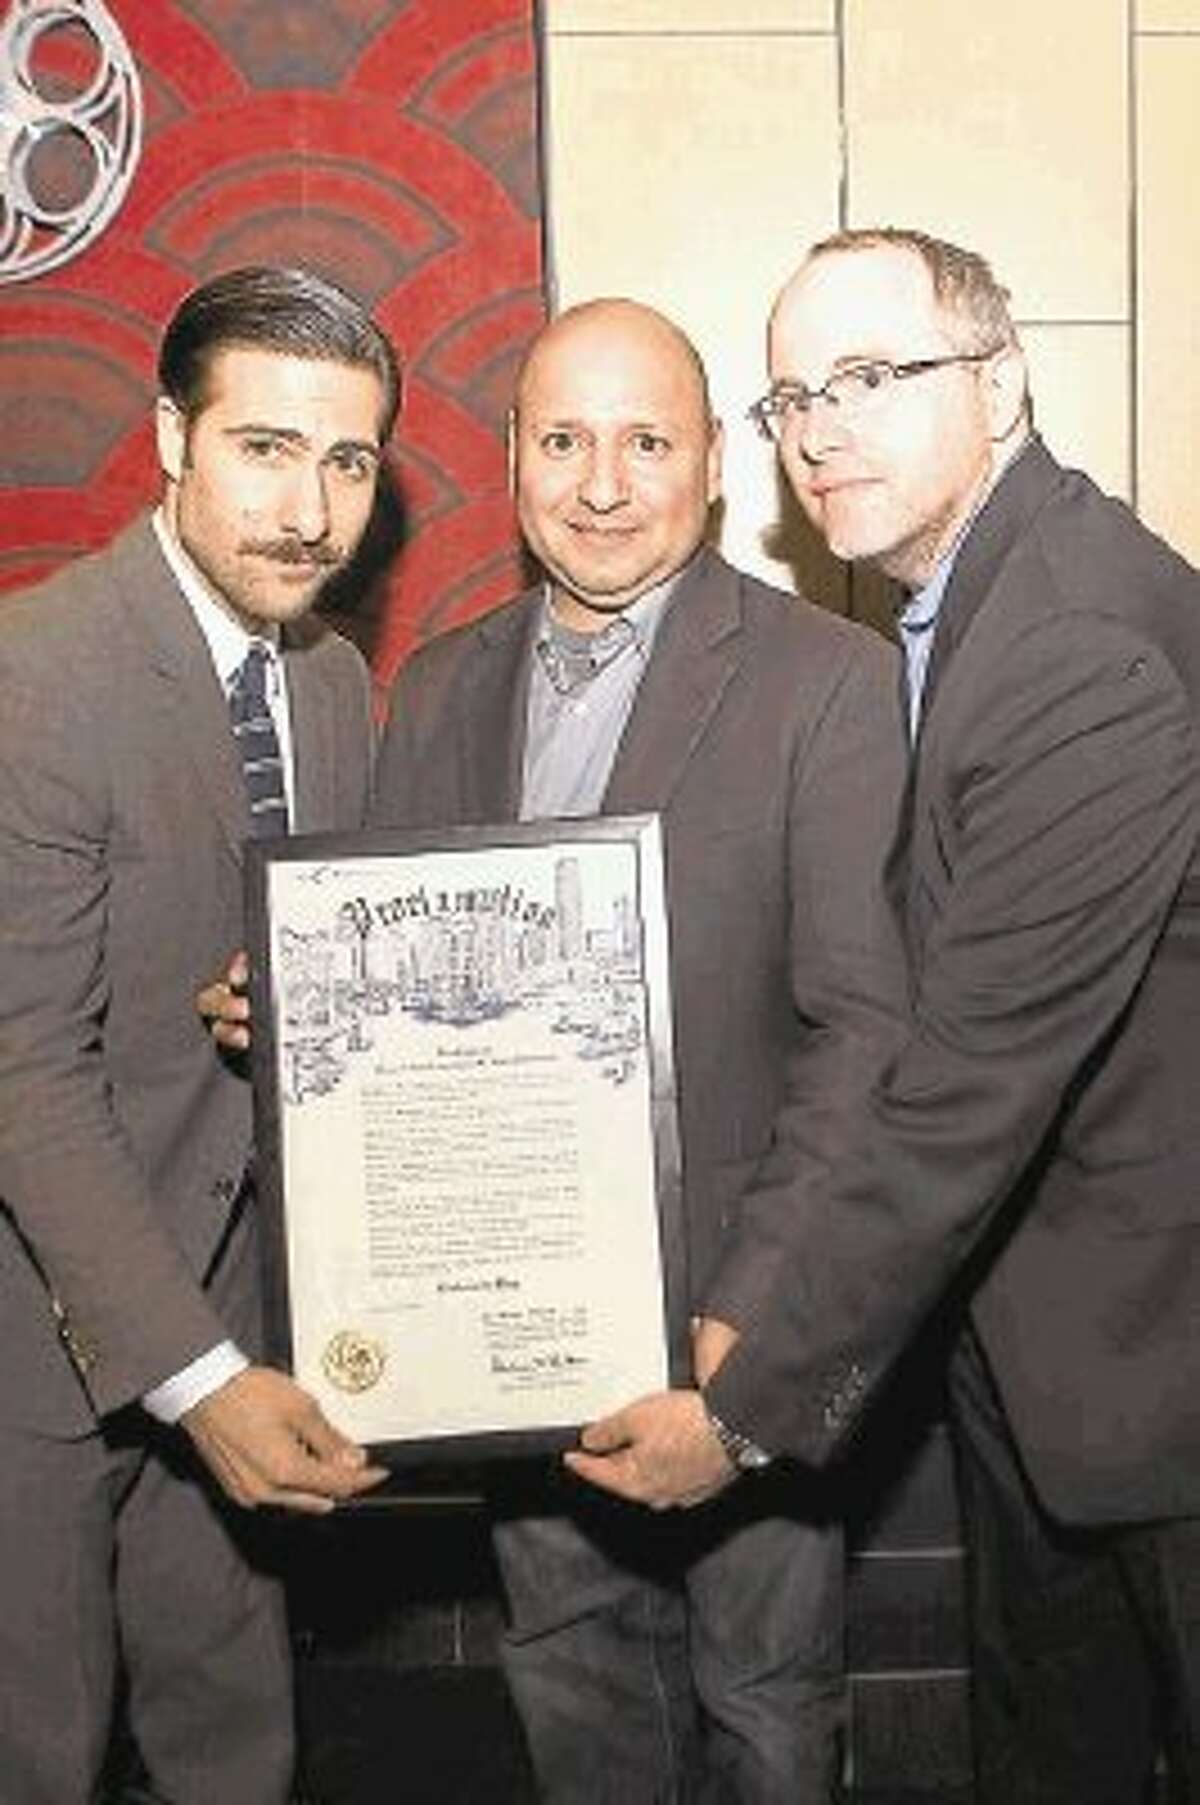 Schwartzman (left) was presented a proclamation by the City of Houston for the official Rushmore Day from Alfred Cervantes of the Houston Film Commission and Joshua Starnes of the Houston Film Critics Society.